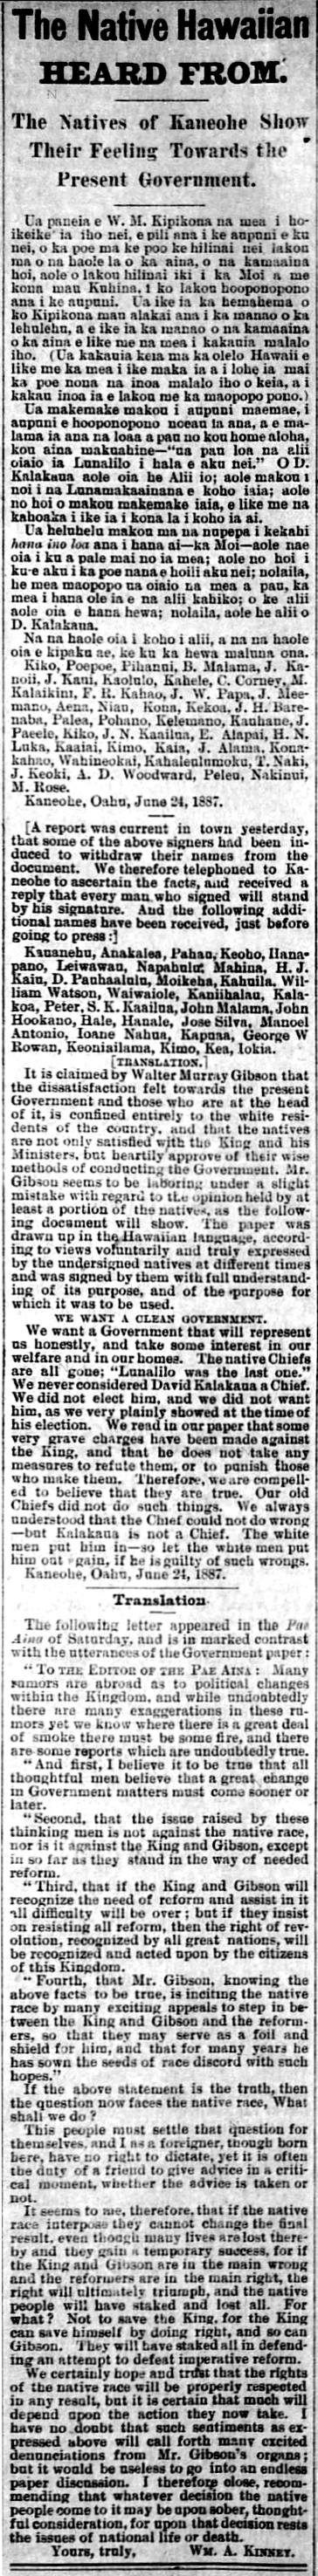 HawaiianGazette_6_28_1887_4.png